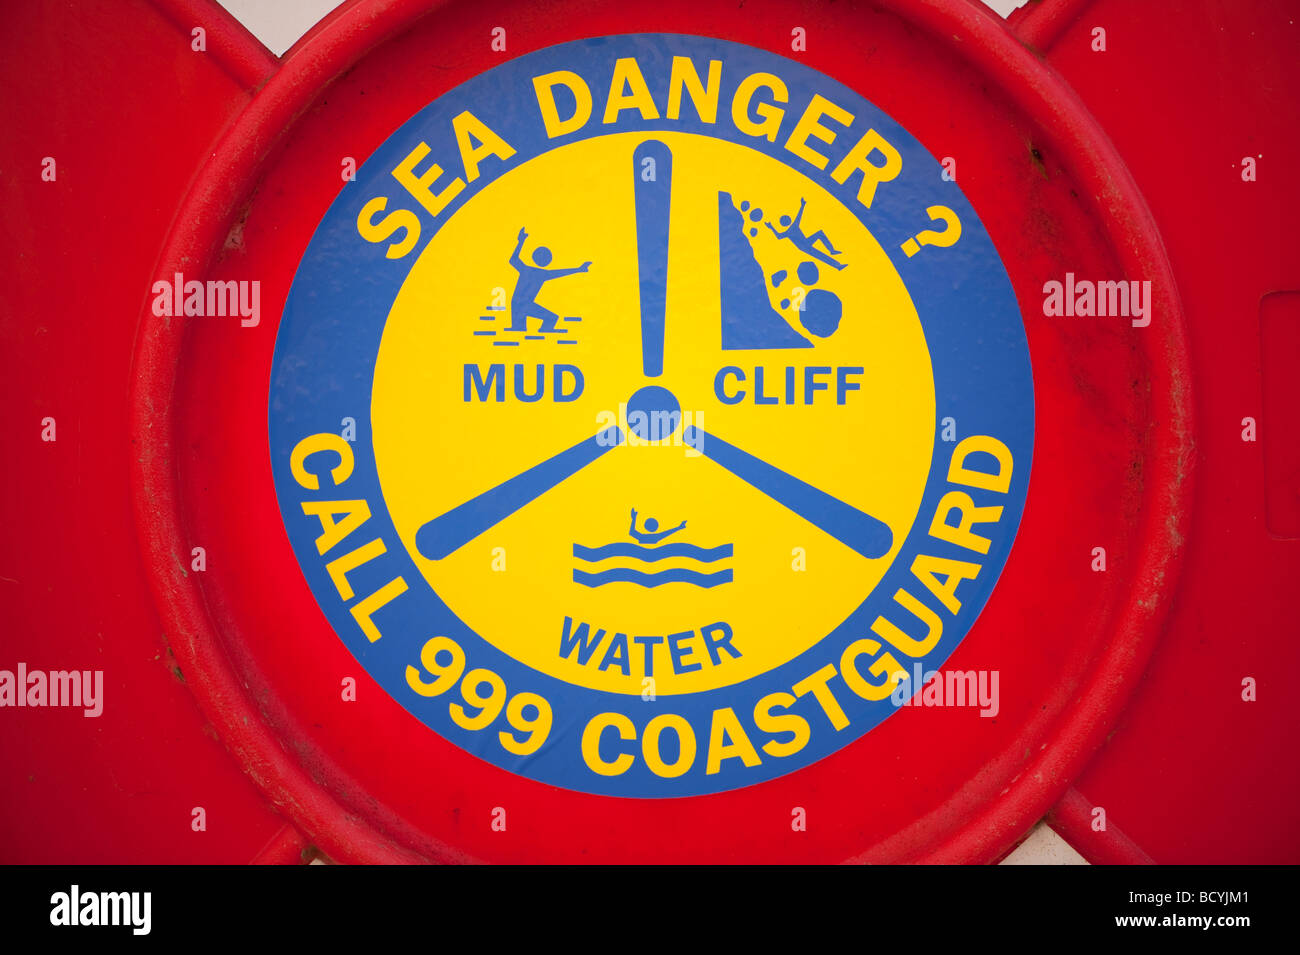 Sea Danger information panel on seaside lifebelt UK - Stock Image